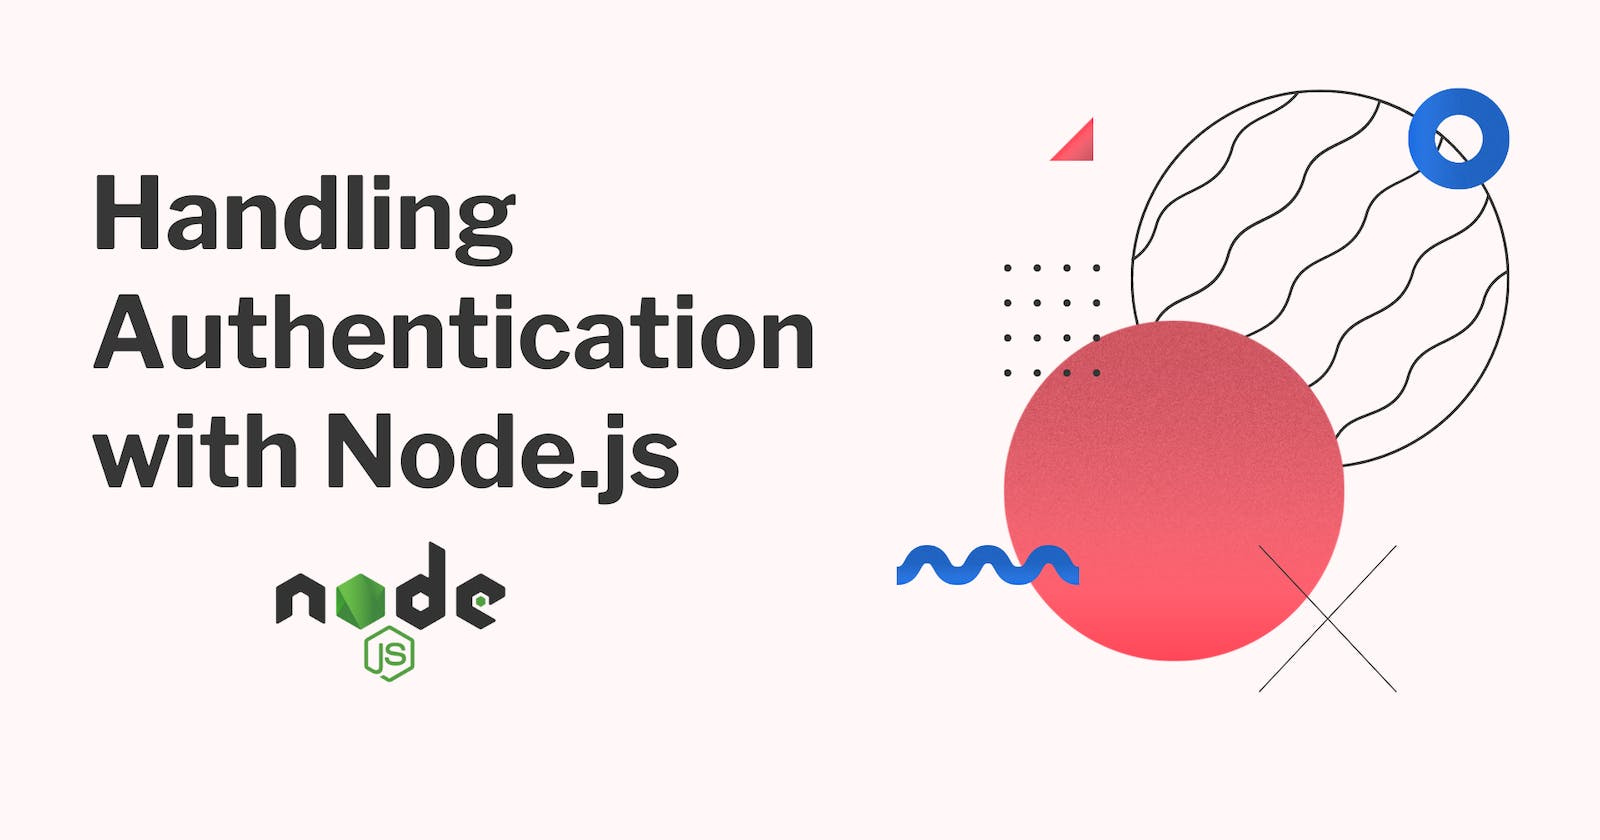 Learn how to handle authentication with Node.js using JWT